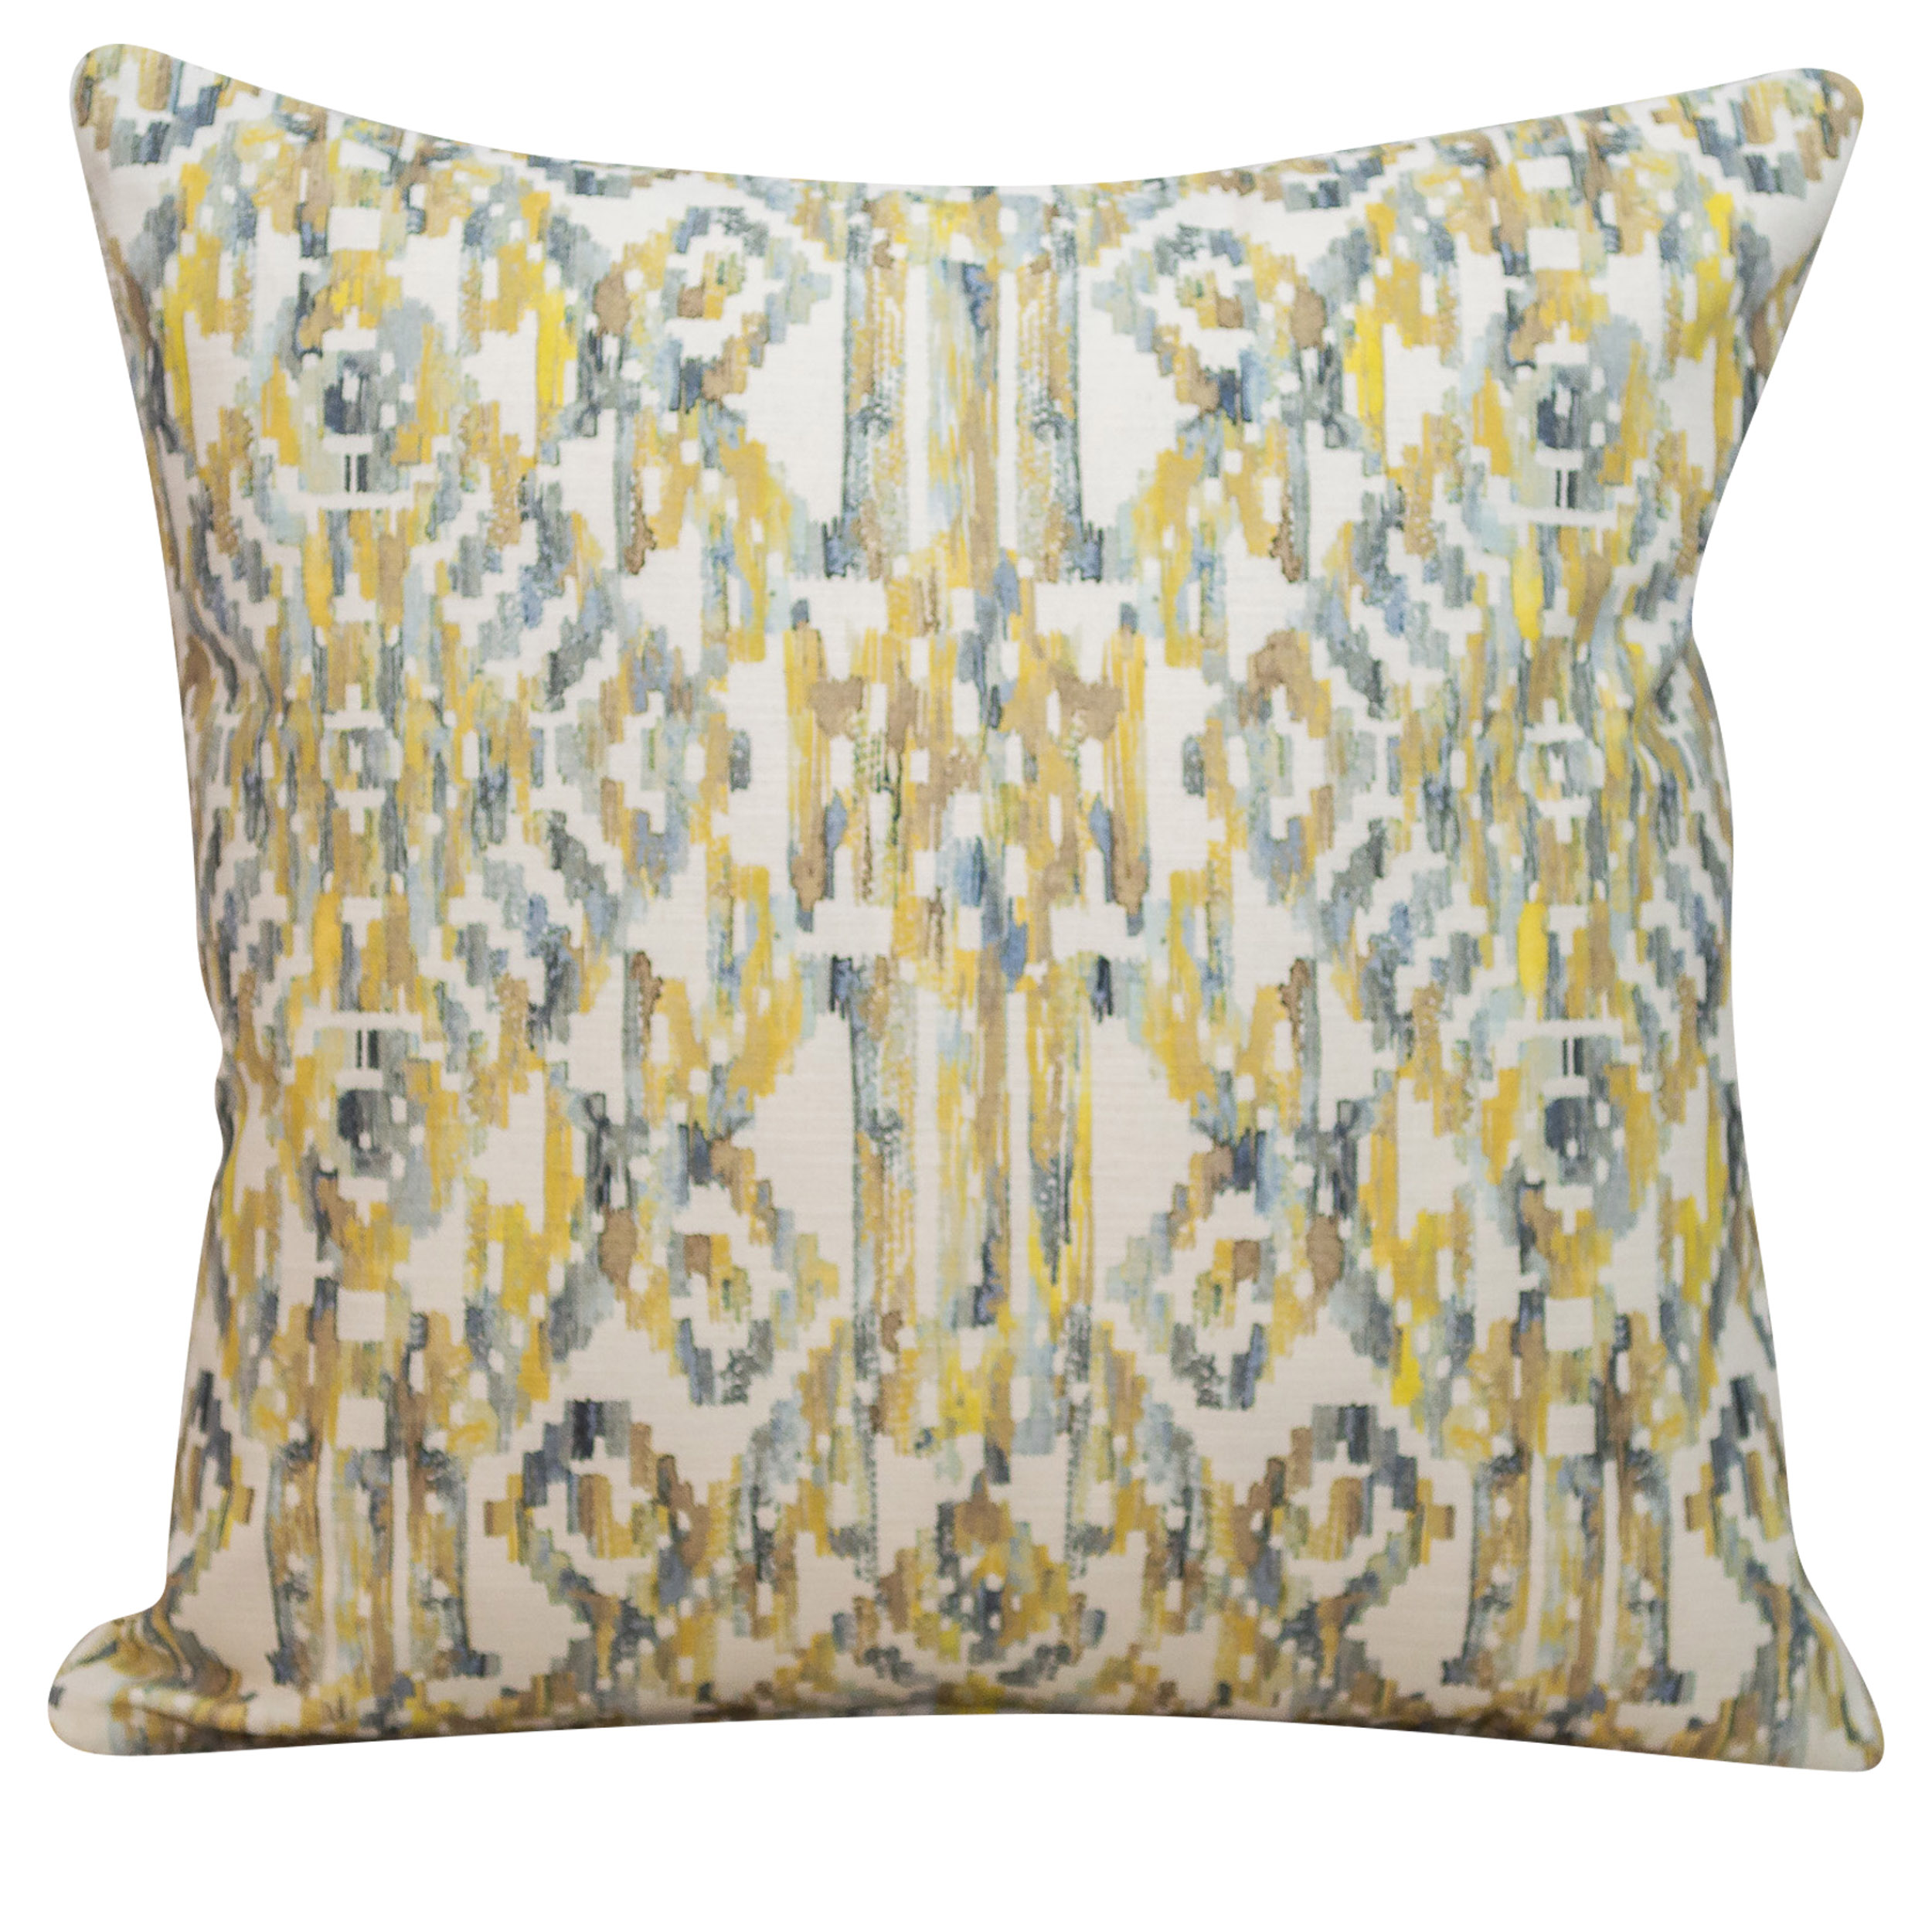 Moroccan Trellis Cushion in Ochre